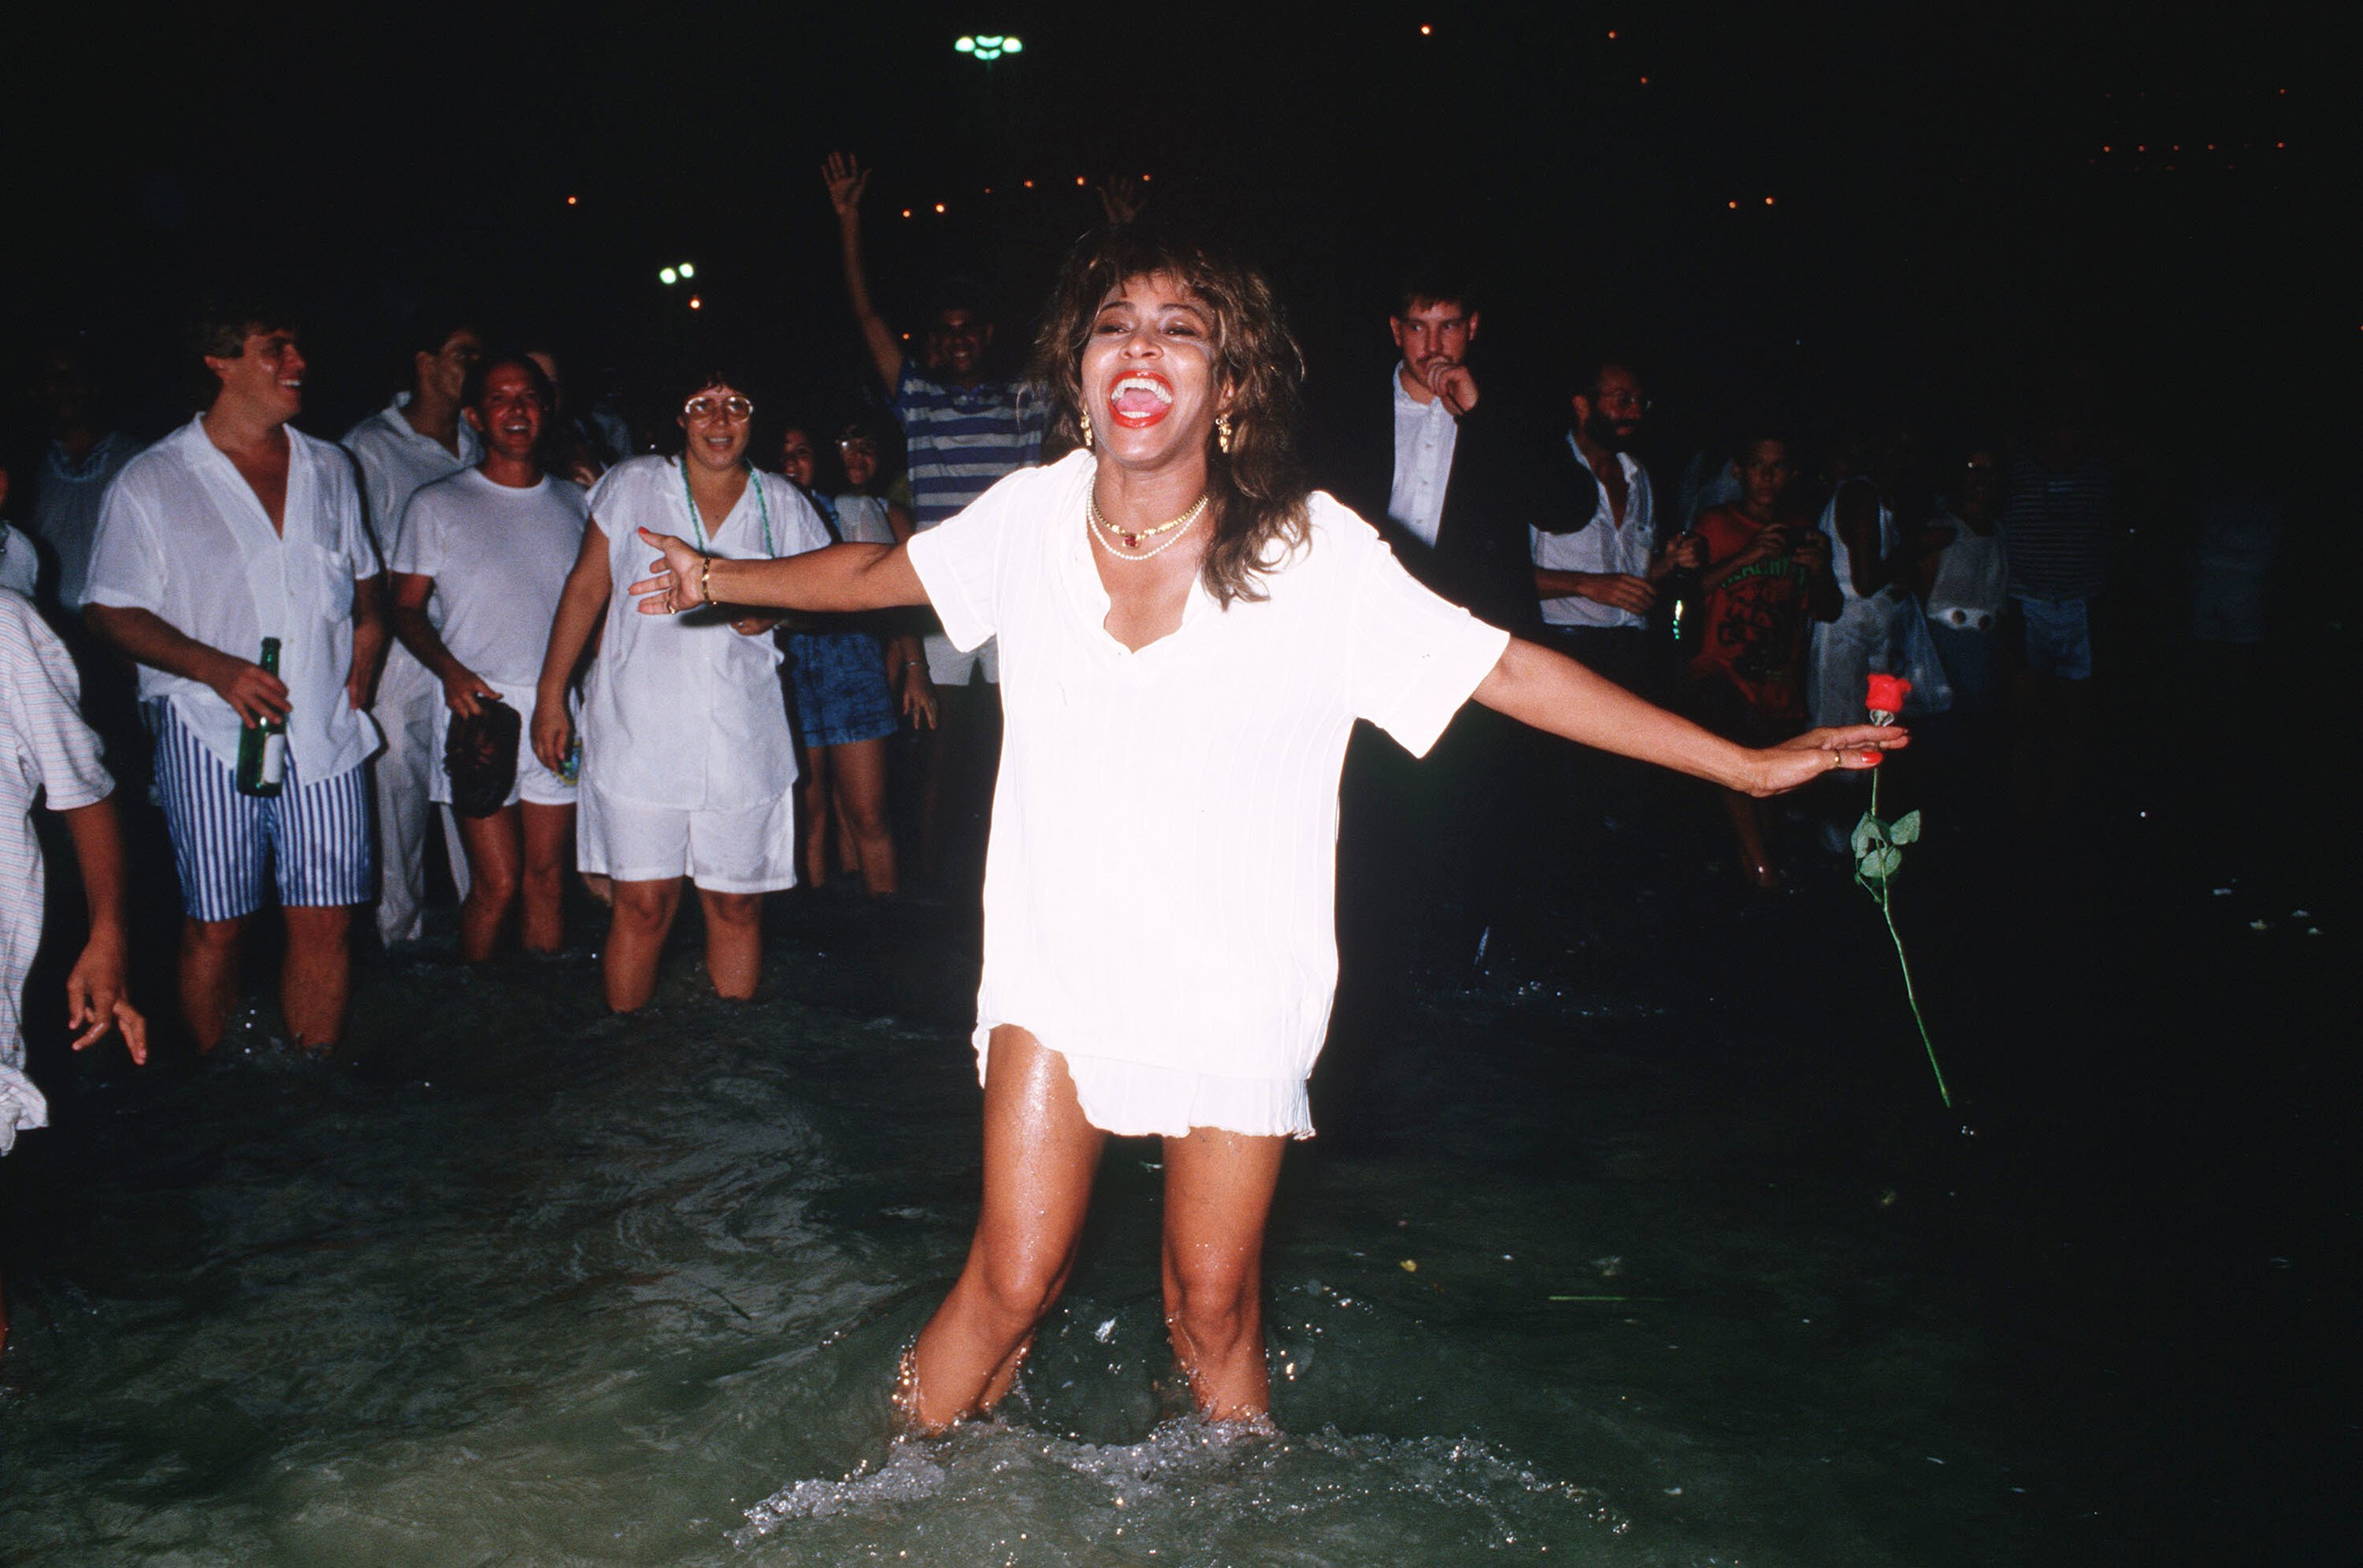 Tina Turner in the sea on New Years Eve in Rio de Janeiro, Brazil in 1988 | Source: Getty Images